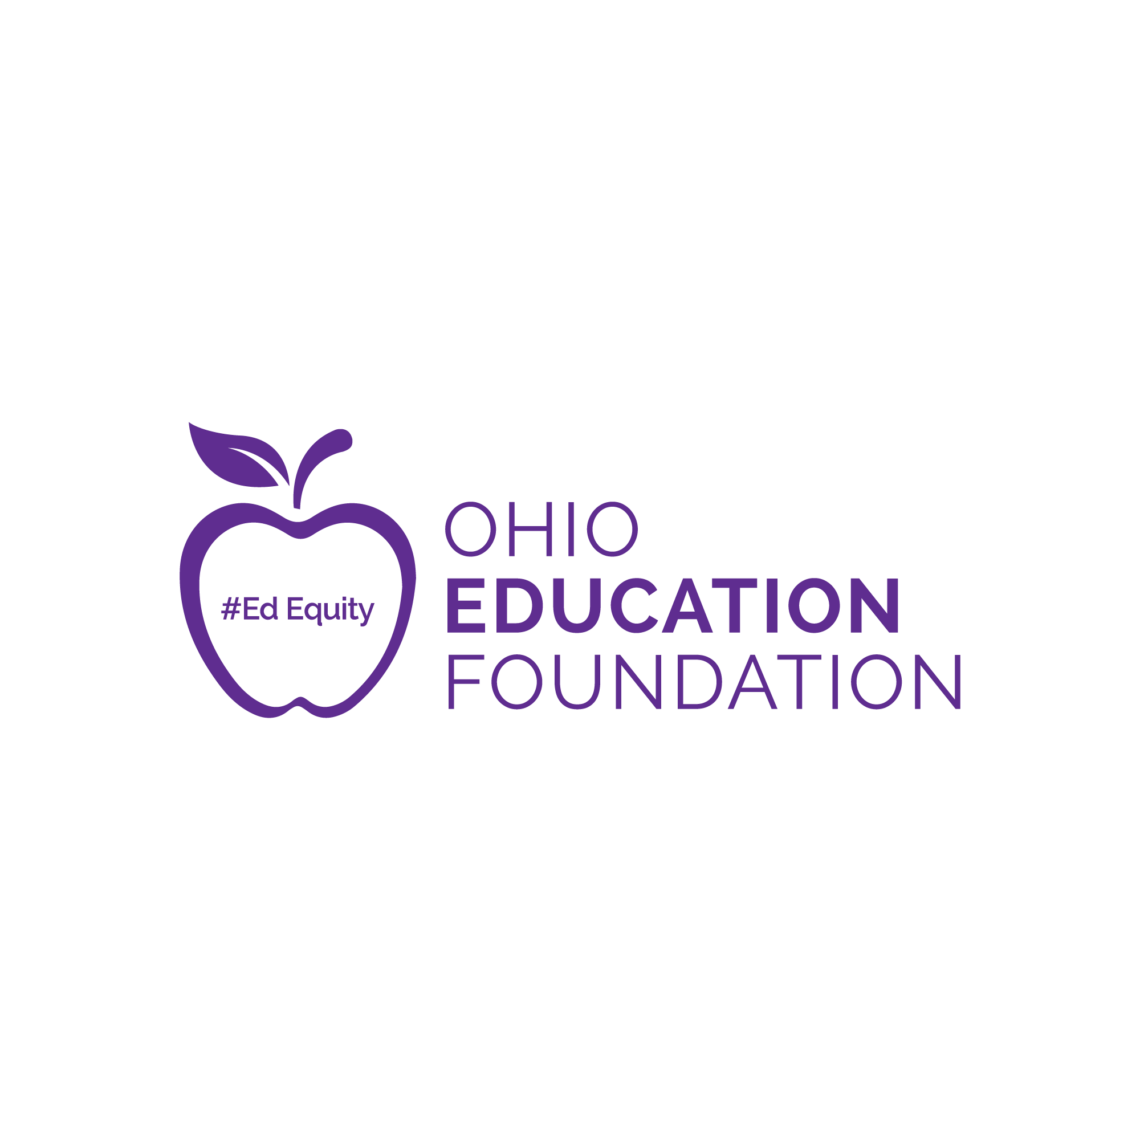 CoNimby® Foundation launches new charity to advance educational opportunities.